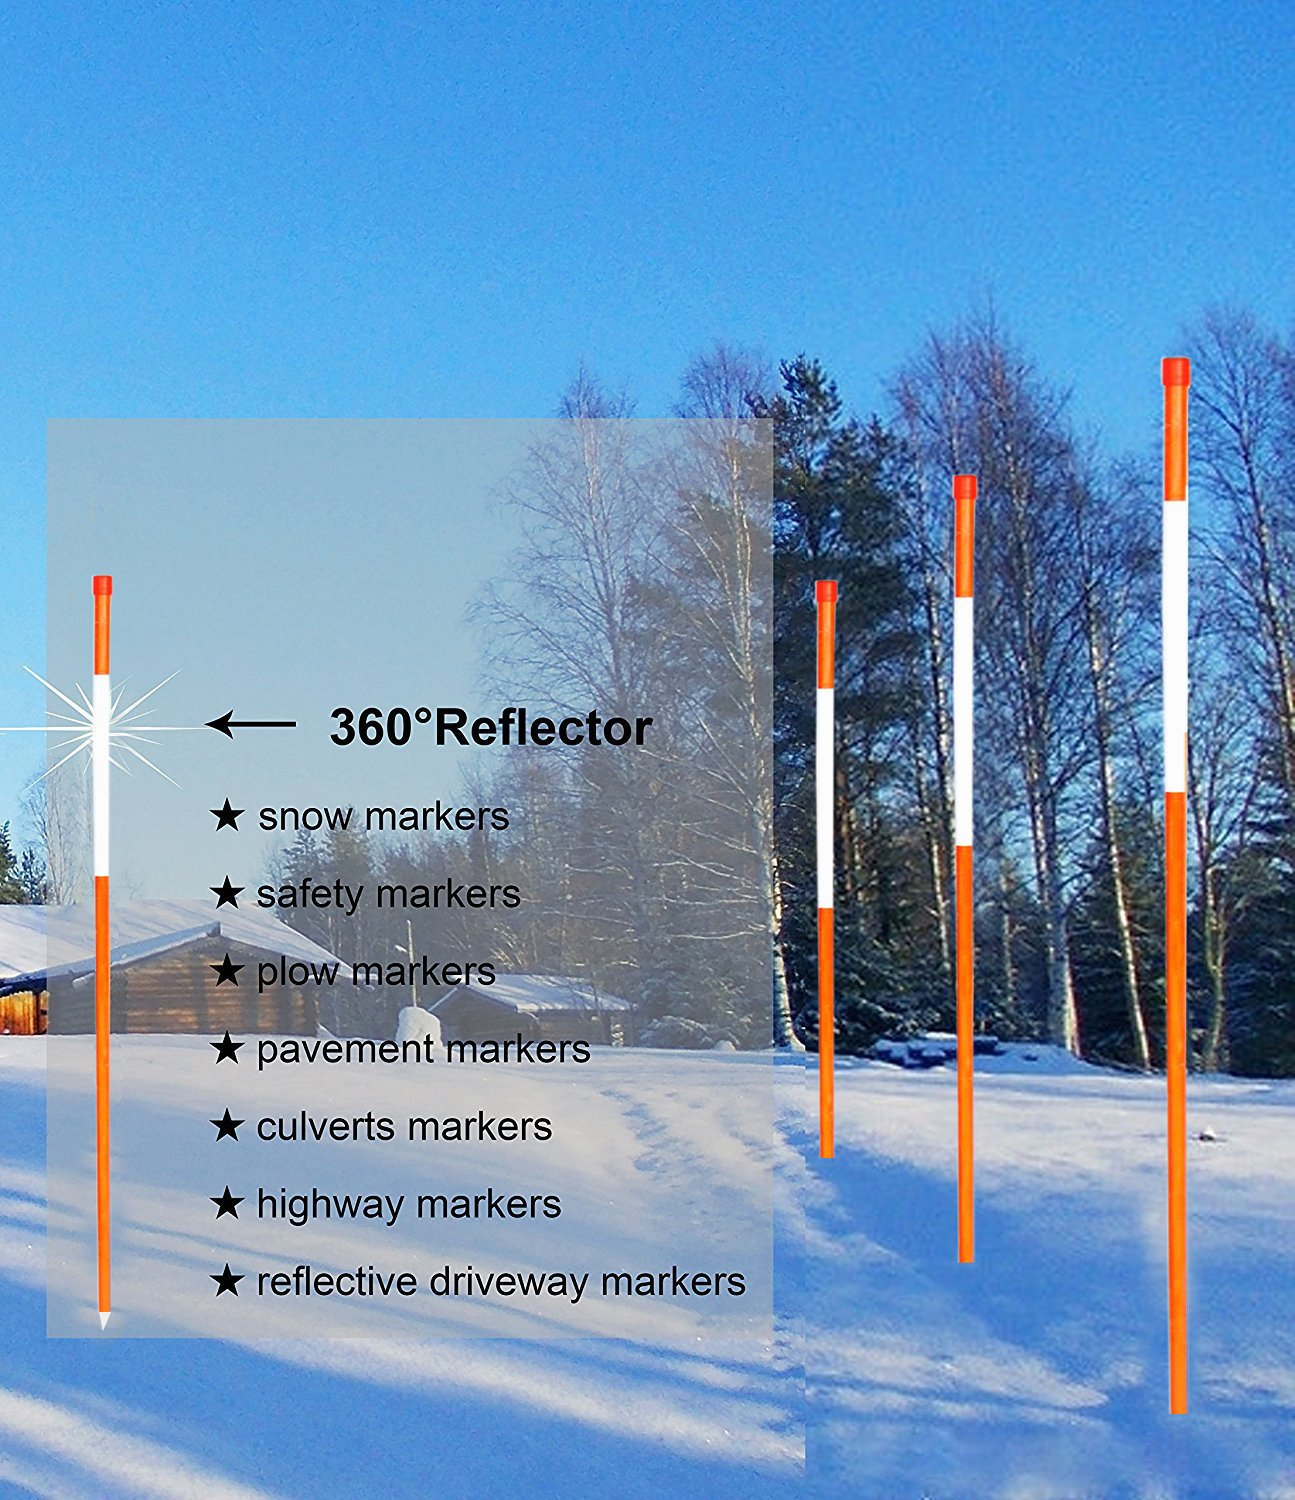 50 Pack FiberMarker 24-Inch Reflective Driveway Markers Driveway Poles for Easy Visibility at Night 5//16 Inch Diameter Orange